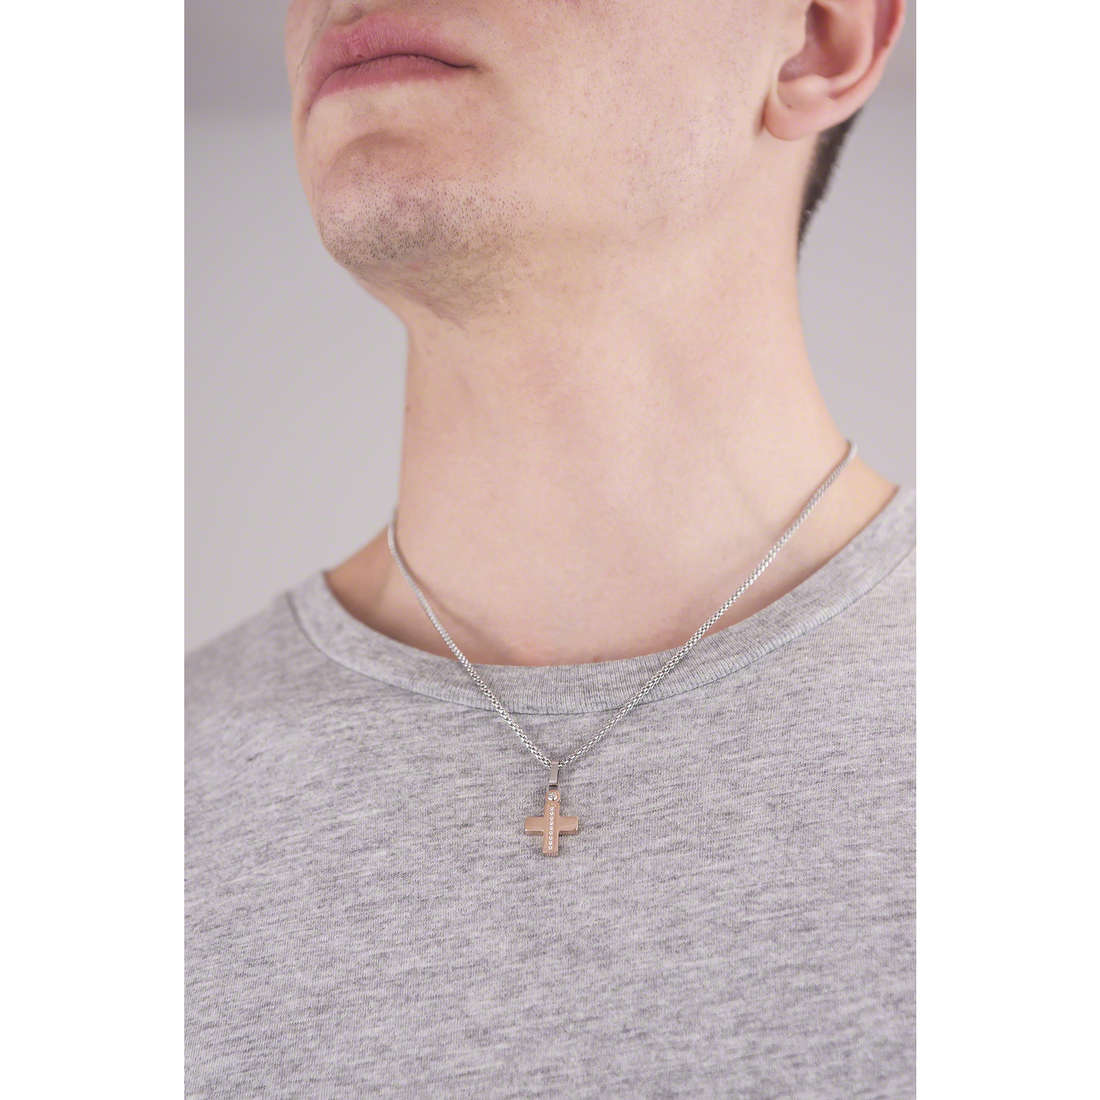 Comete colliers Zip homme UGL 520 indosso